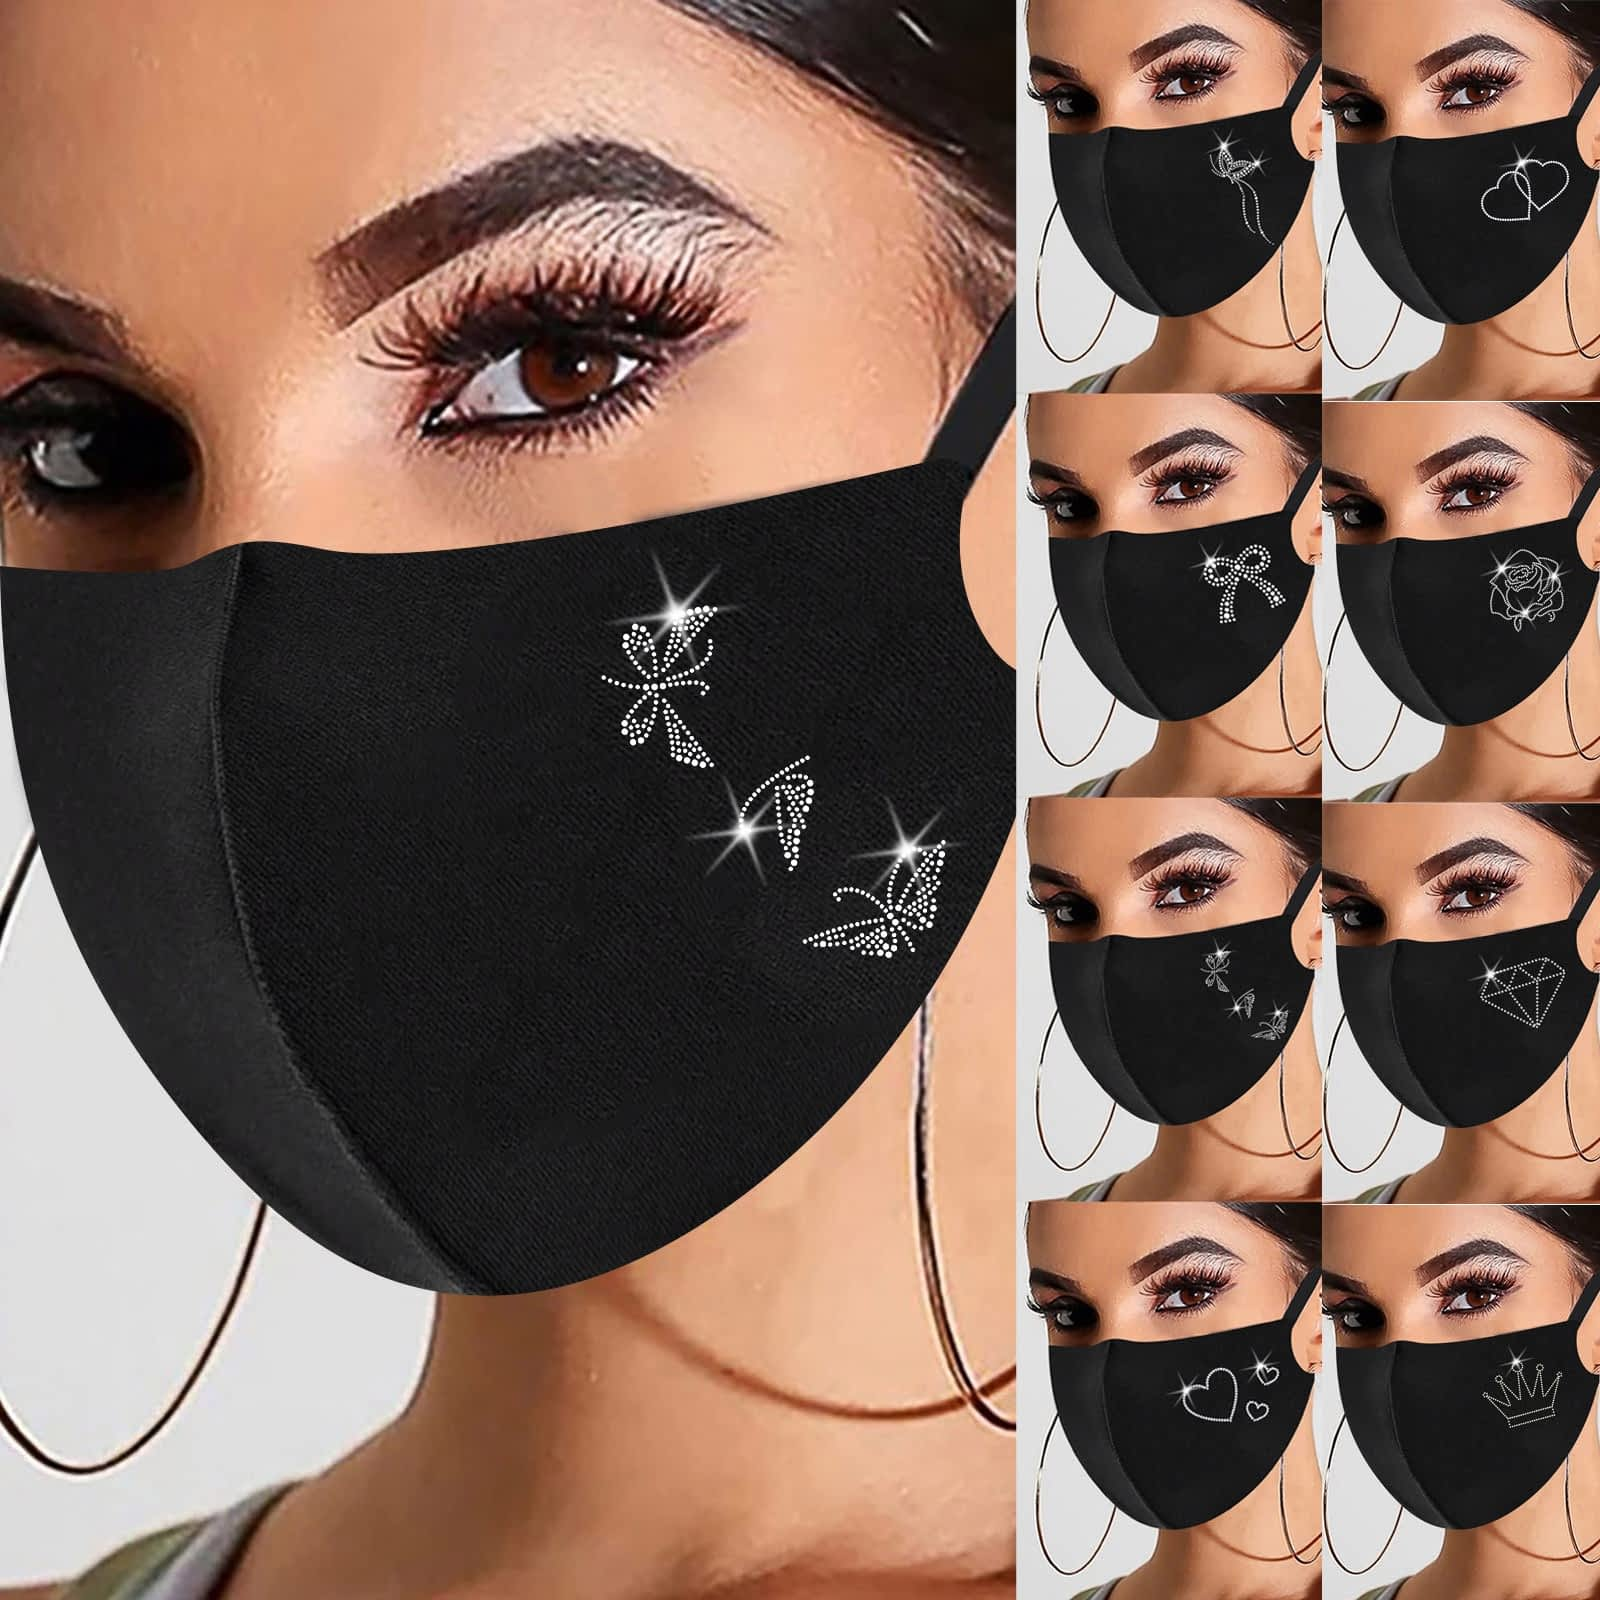 1pc-Face-Mask-For-Women-s-Fashionable-Hot-Diamond-Printing-Mask-Washable-Breathable-Mascarillas-Reusable-Ear.jpg